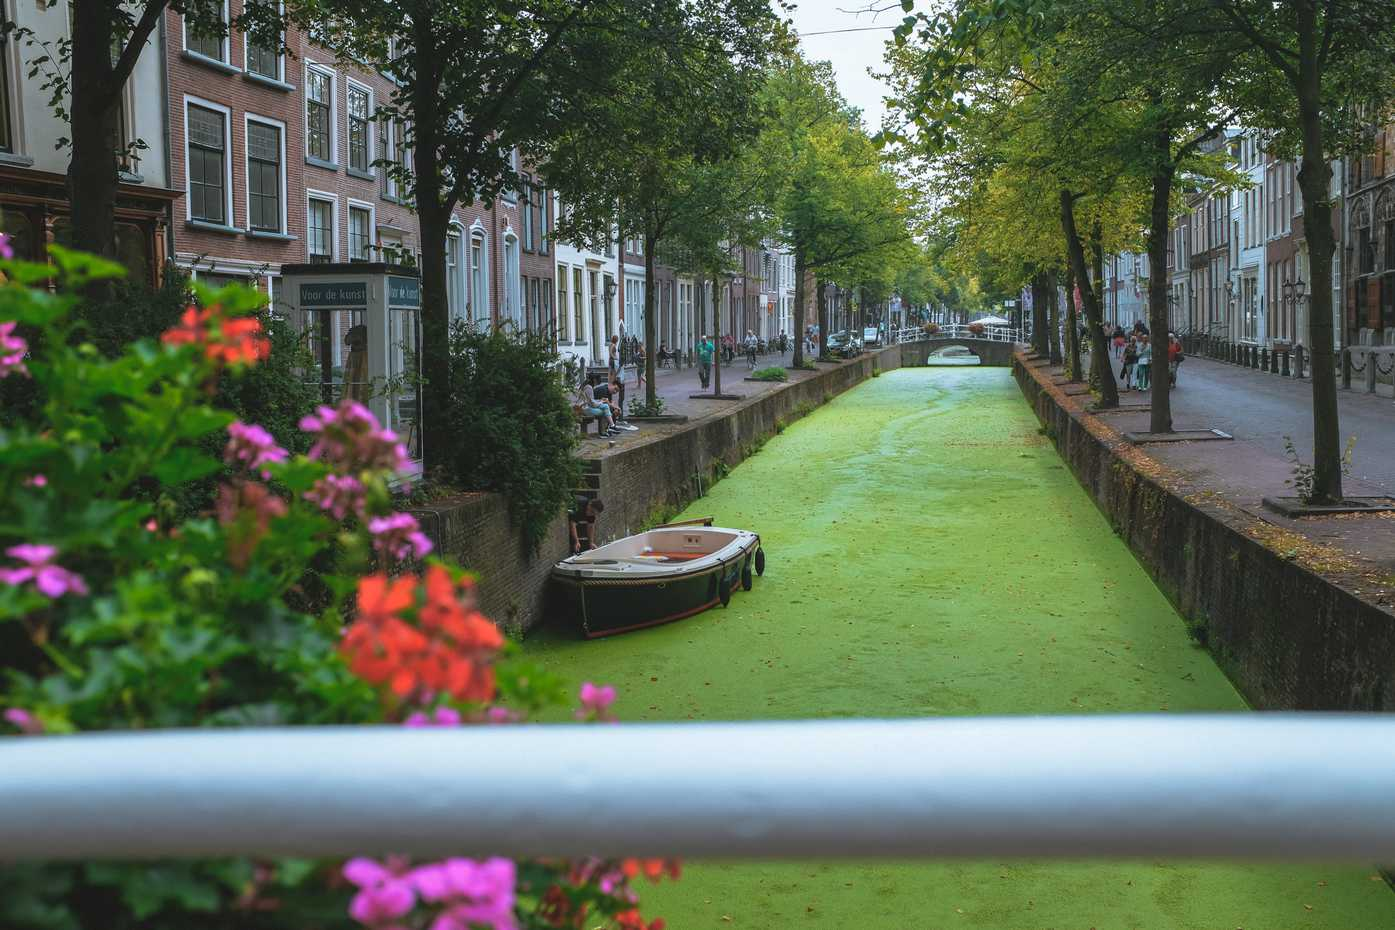 Another view of a green canal